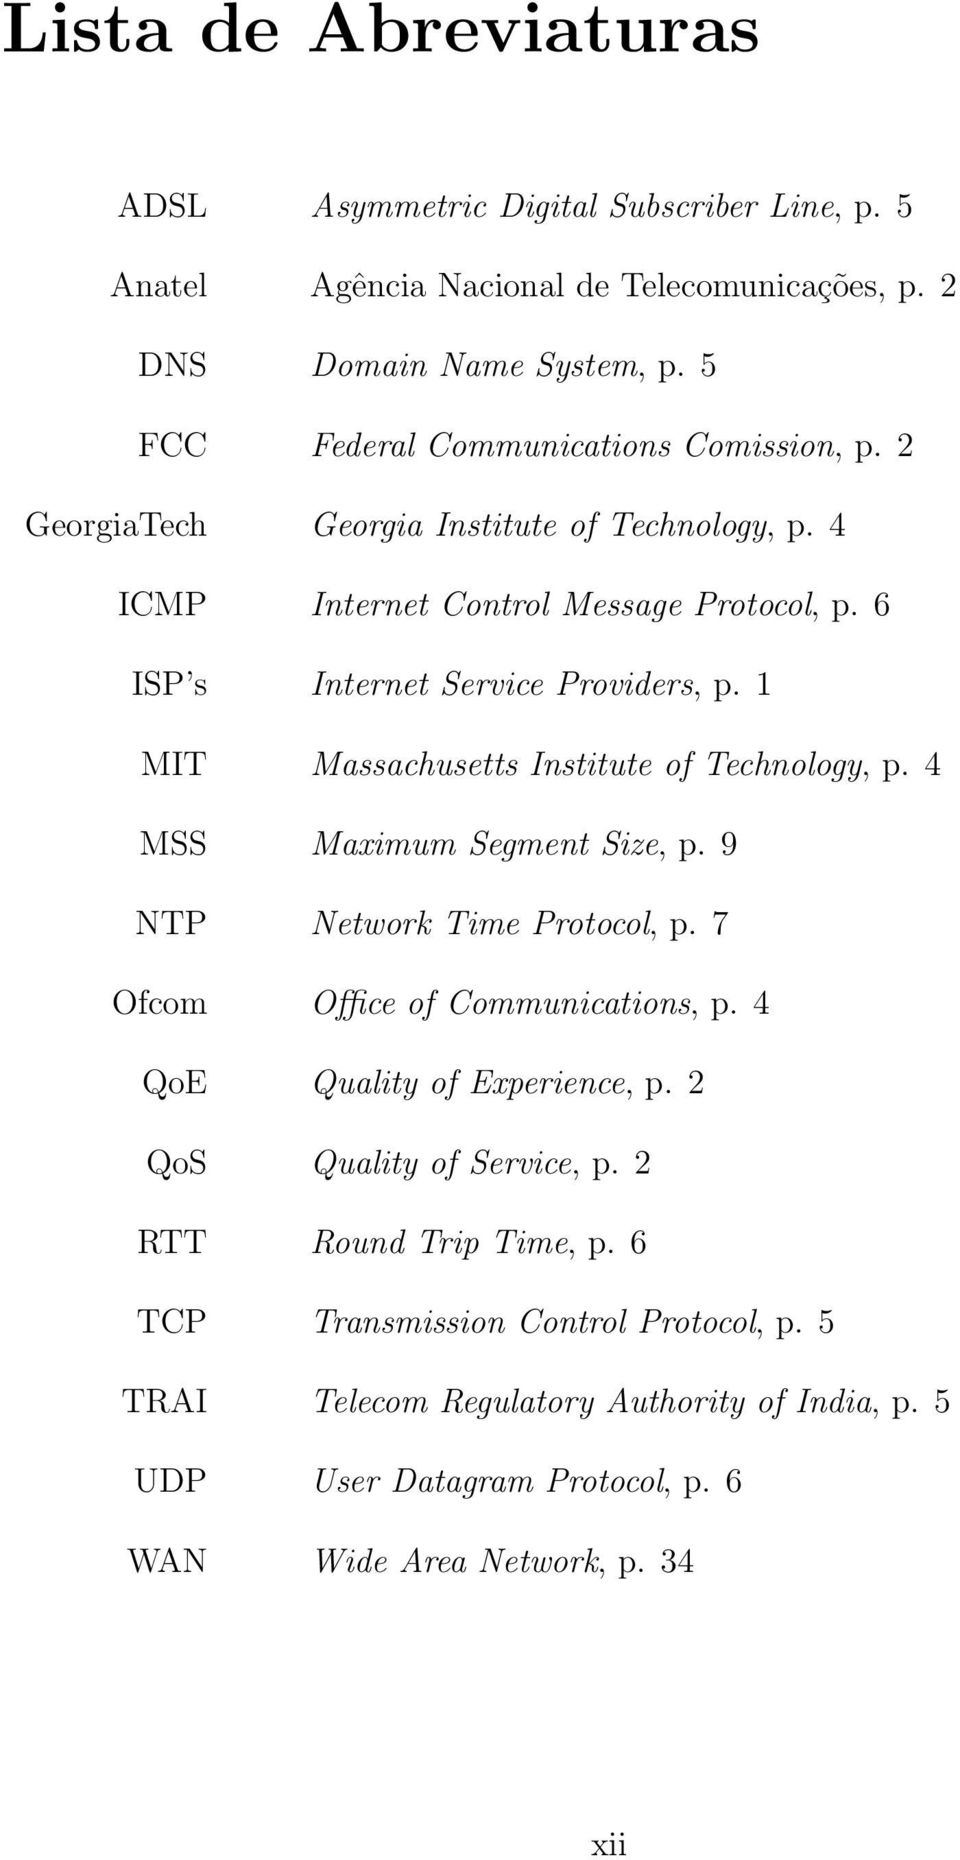 1 MIT Massachusetts Institute of Technology, p. 4 MSS Maximum Segment Size, p. 9 NTP Network Time Protocol, p. 7 Ofcom Office of Communications, p. 4 QoE Quality of Experience, p.